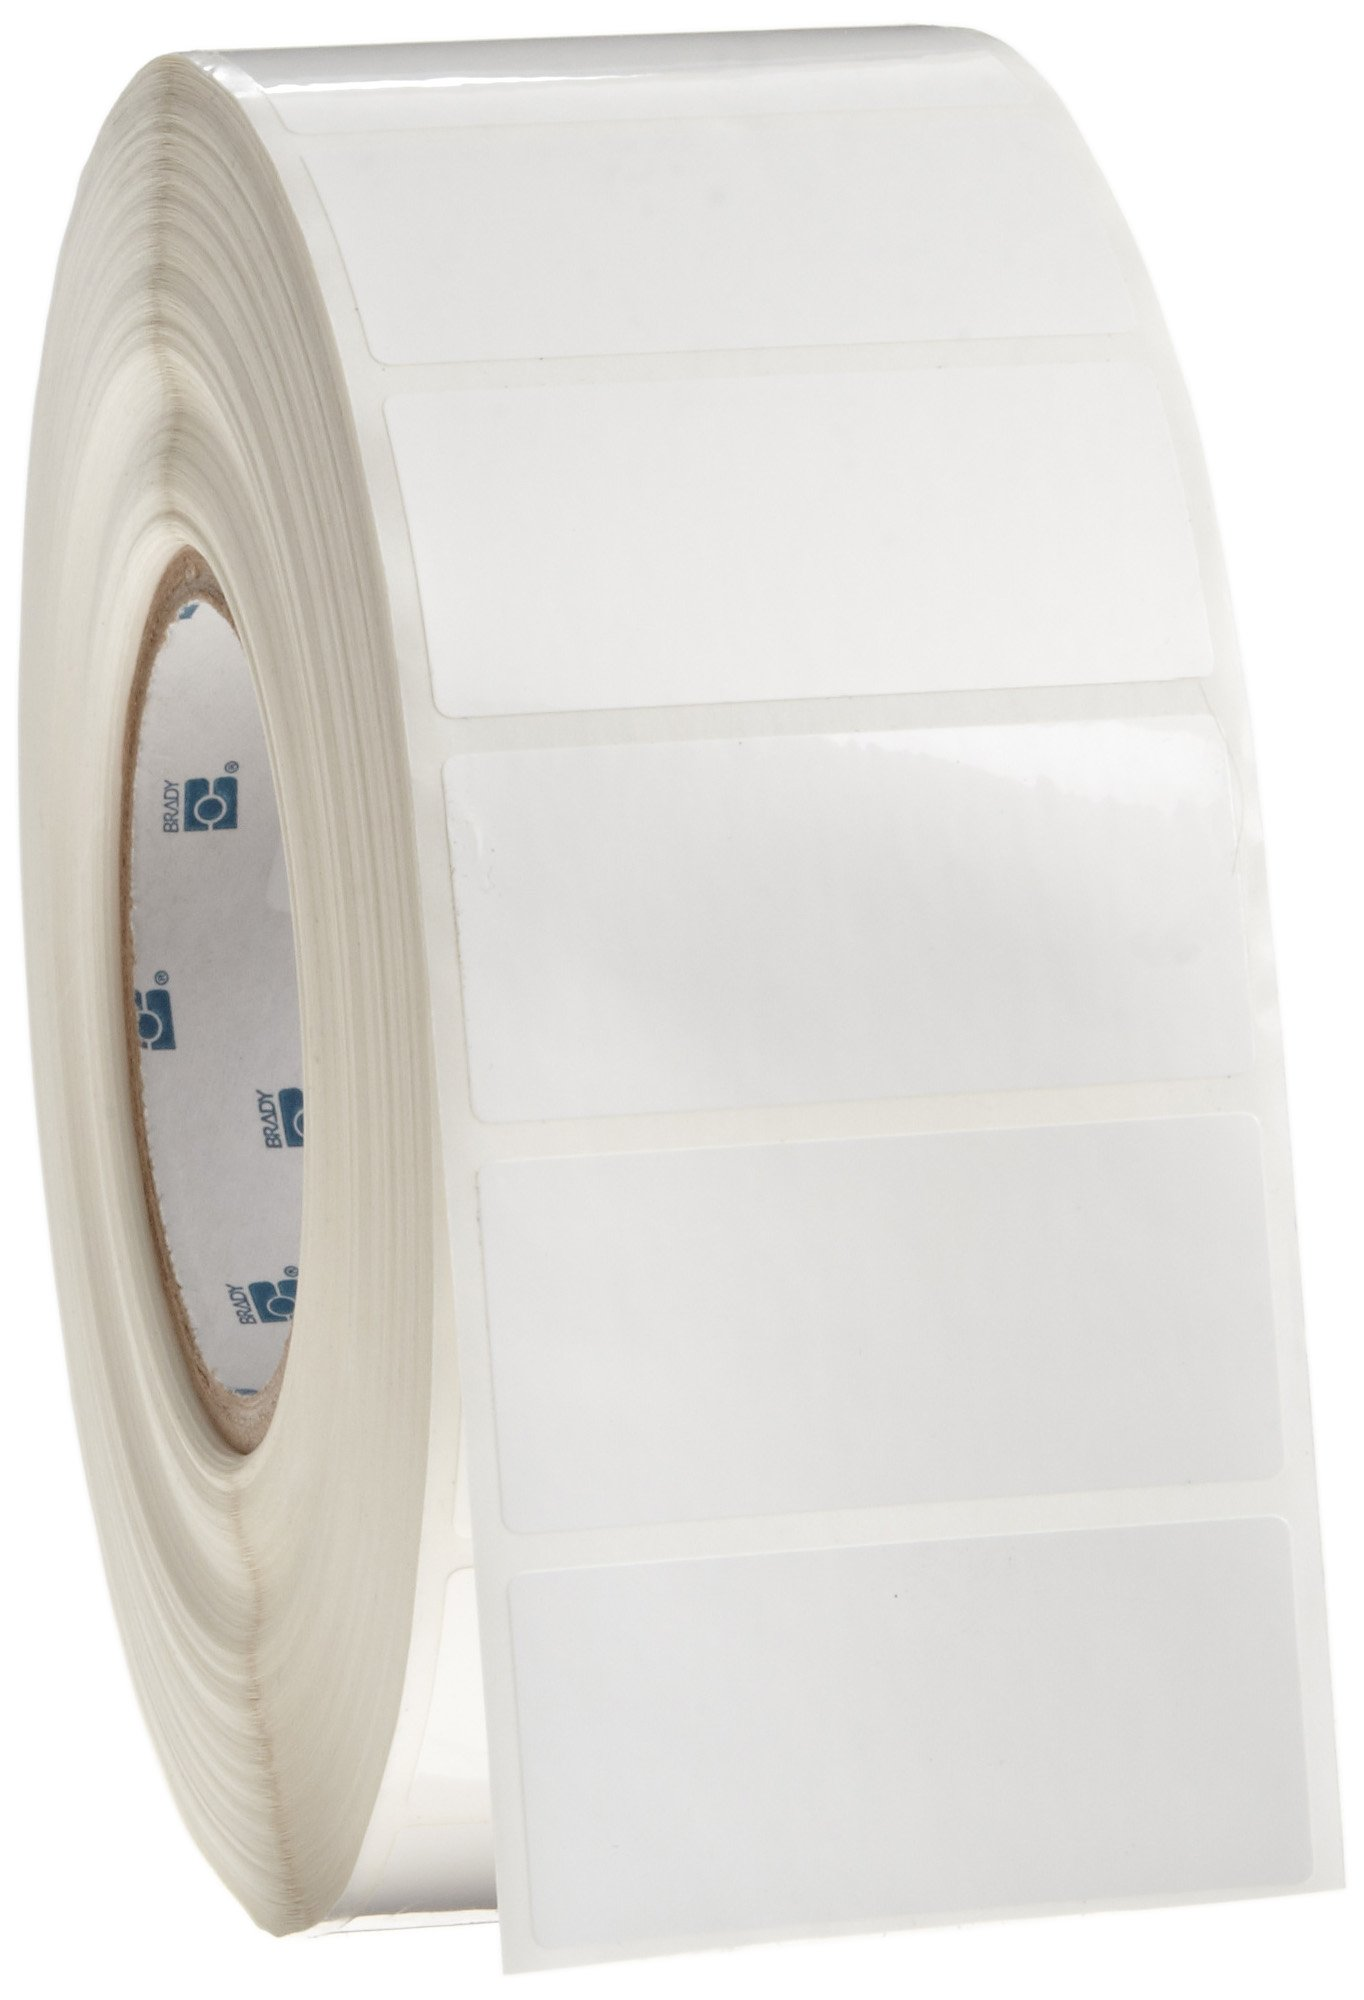 Brady THT-7-422-3 2.75'' Width x 1.25'' Height, B-422 Permanent Polyester, Gloss Finish White Thermal Transfer Printable Label (3000 per Roll)